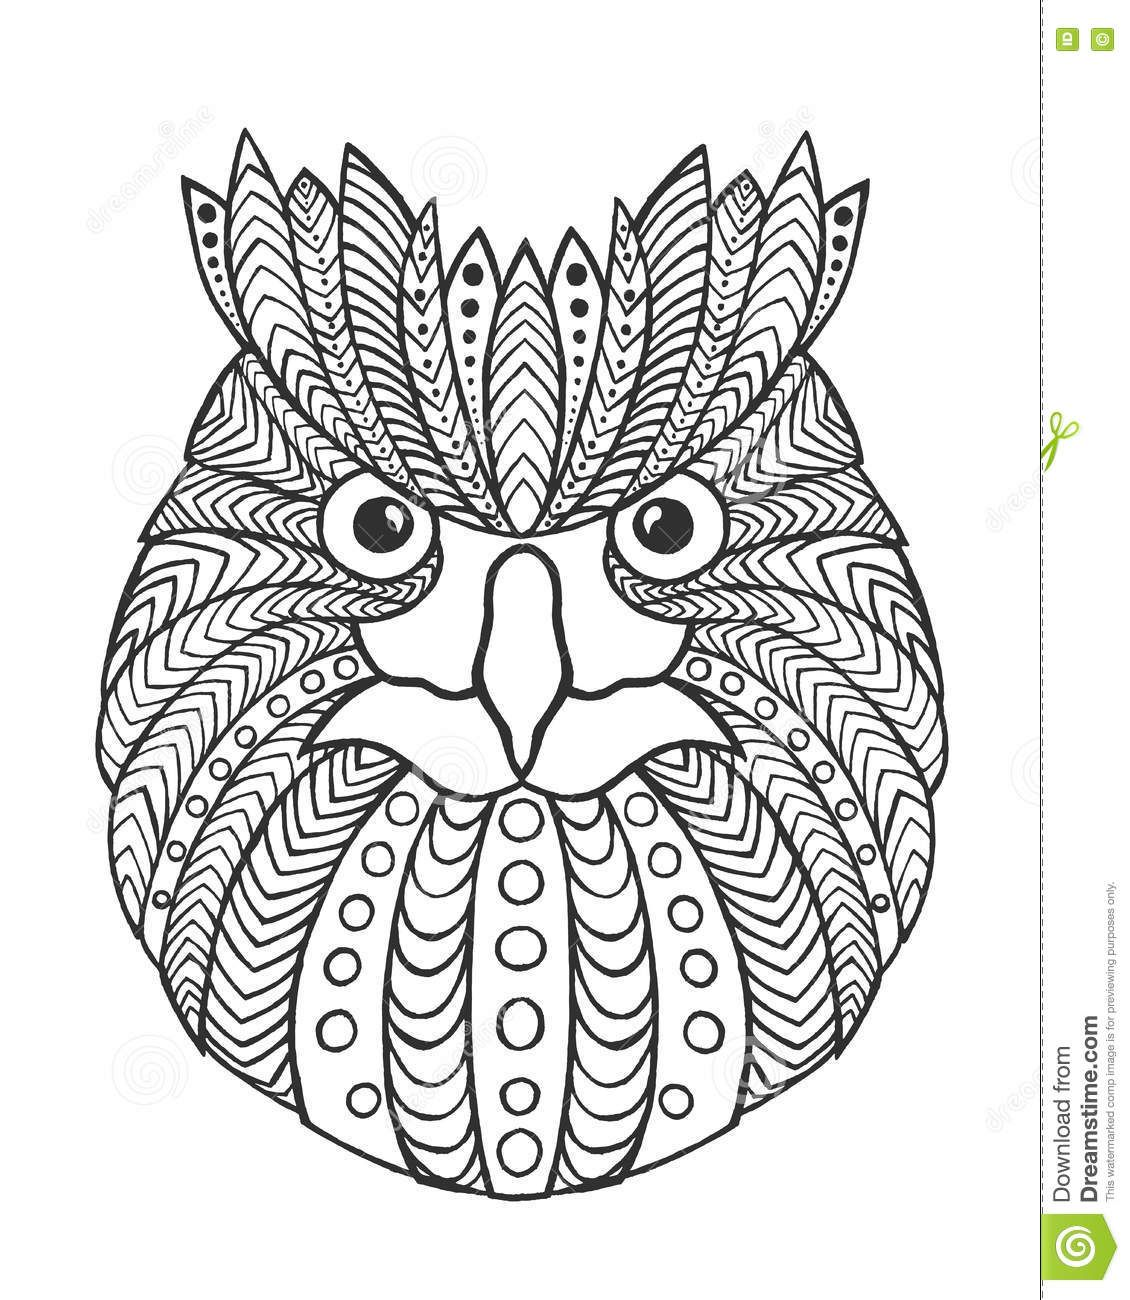 Owl Head Coloring Pages Pattern Coloring Pages Coloring Pages Animal Coloring Pages